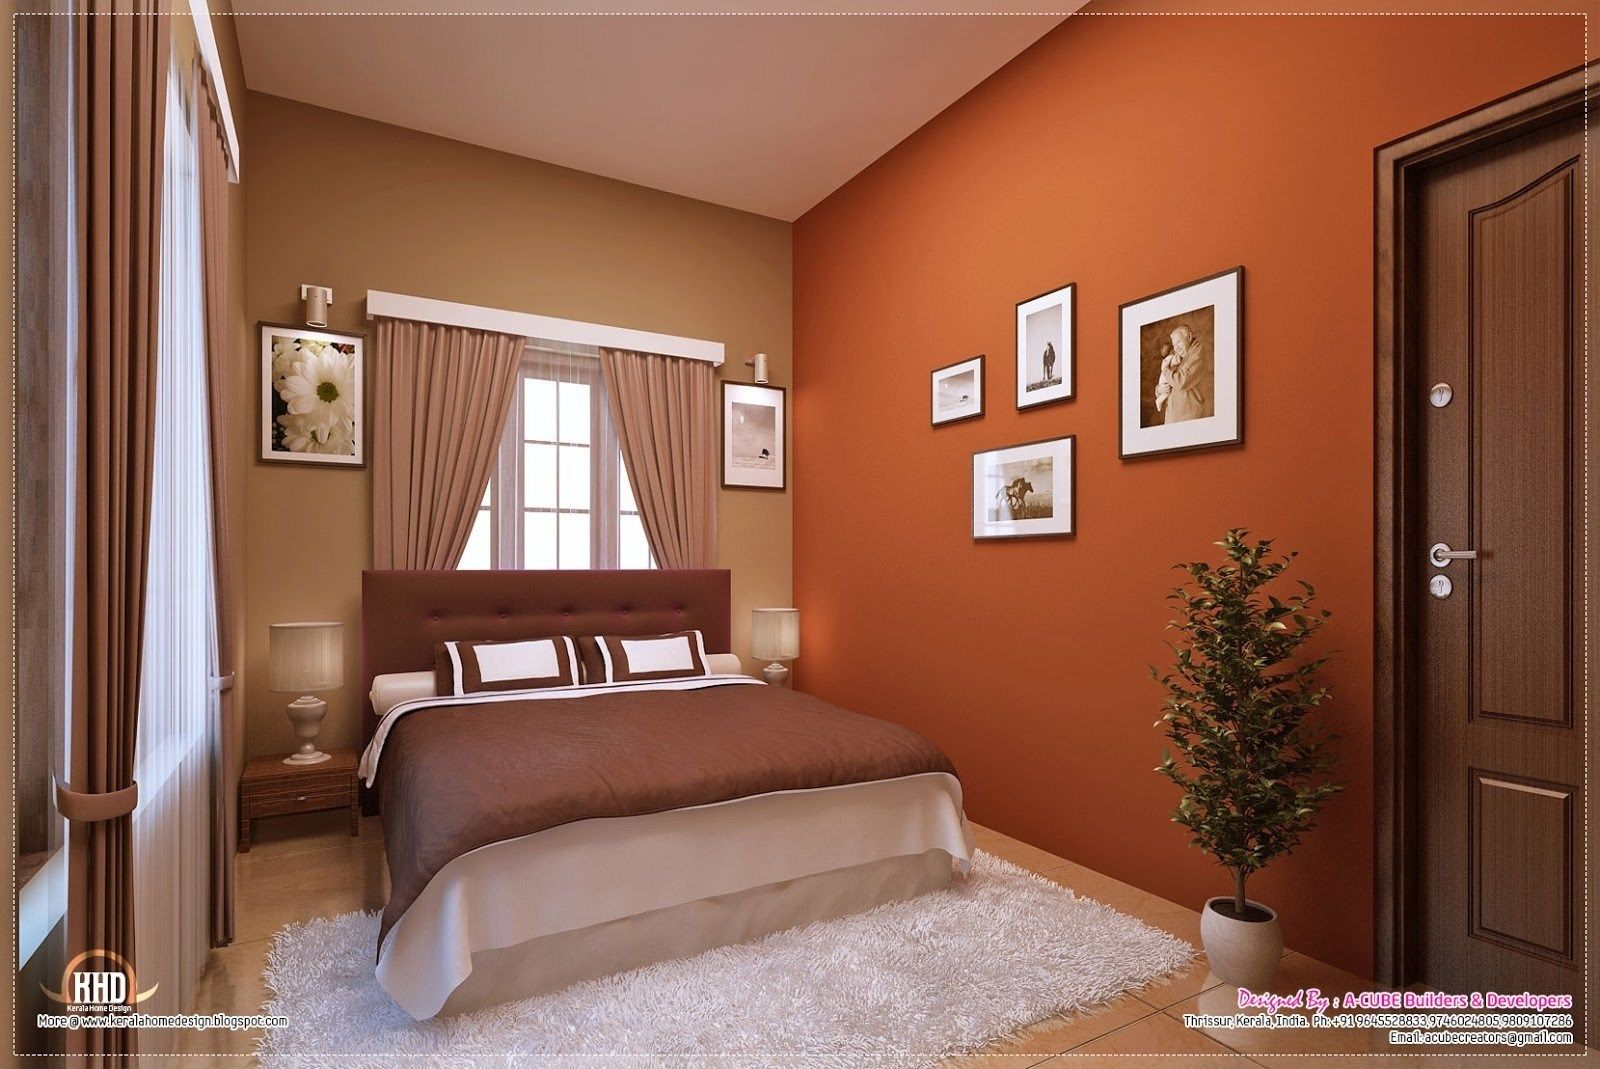 Small Bedroom Decorating Ideas On A Budget Small Bedroom Interior Indian Bedroom Decor Bedroom Interior